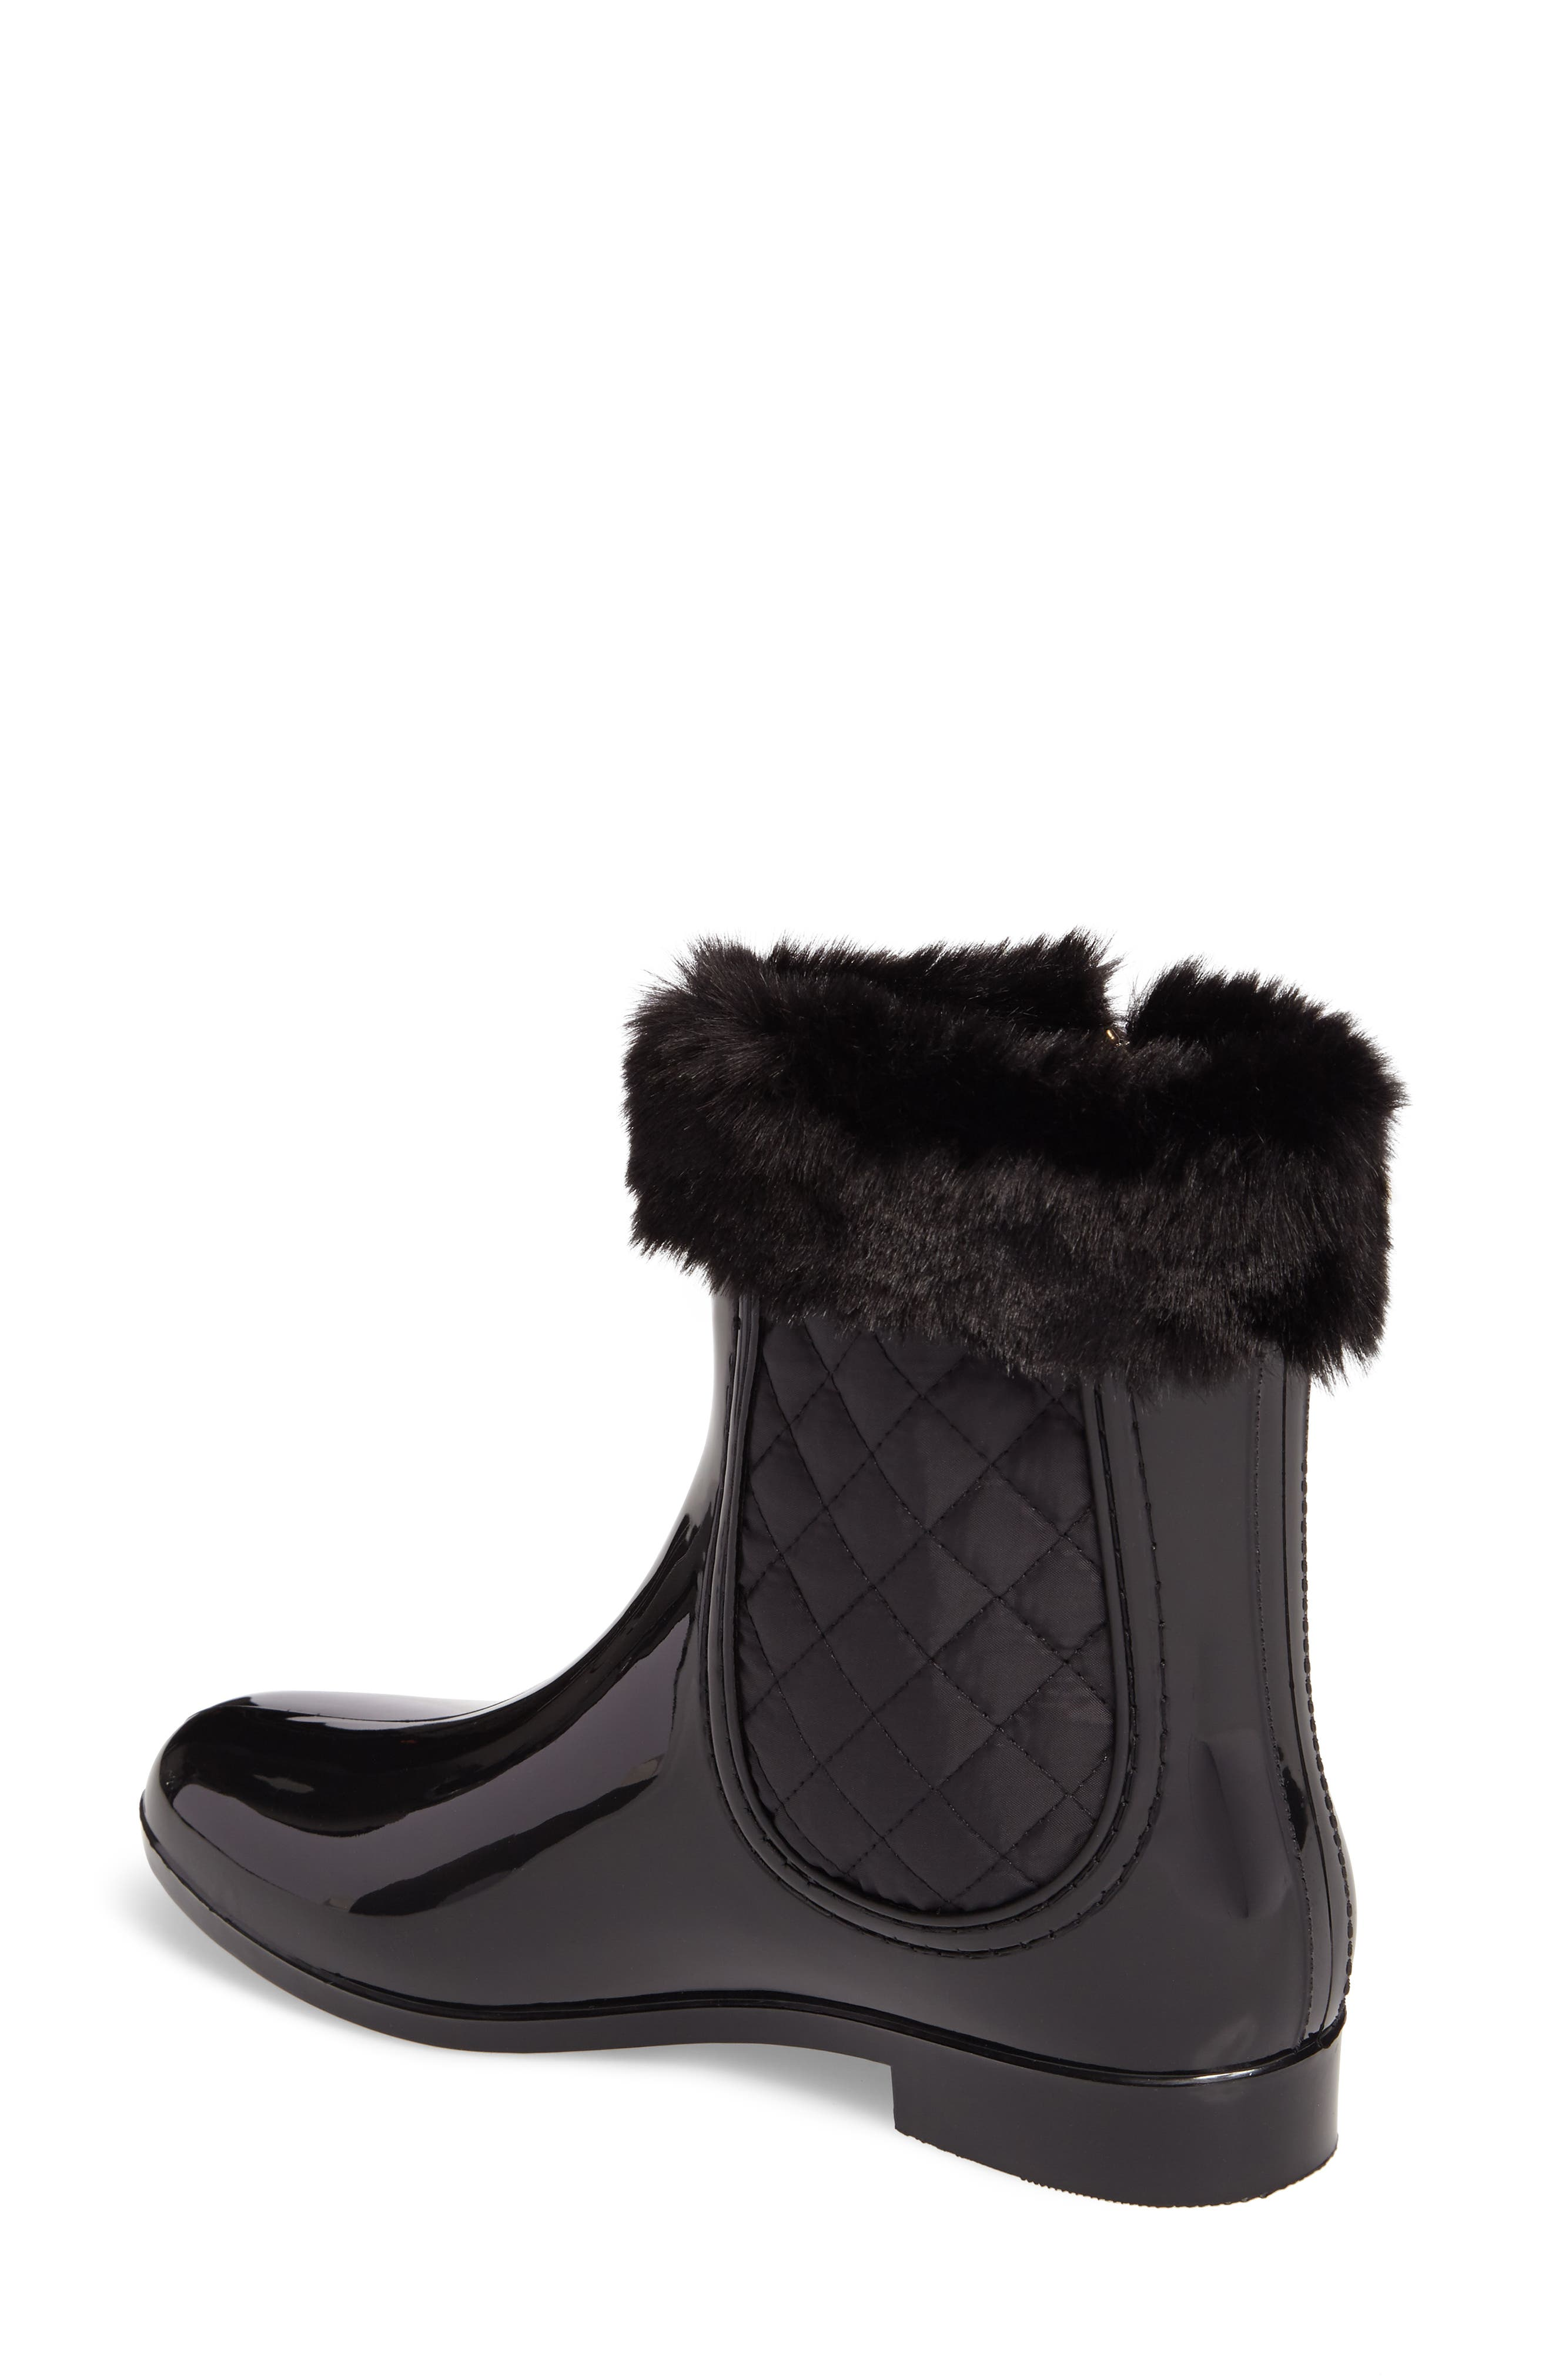 Glasgow Faux Fur Cuff Boot,                             Alternate thumbnail 2, color,                             BLACK